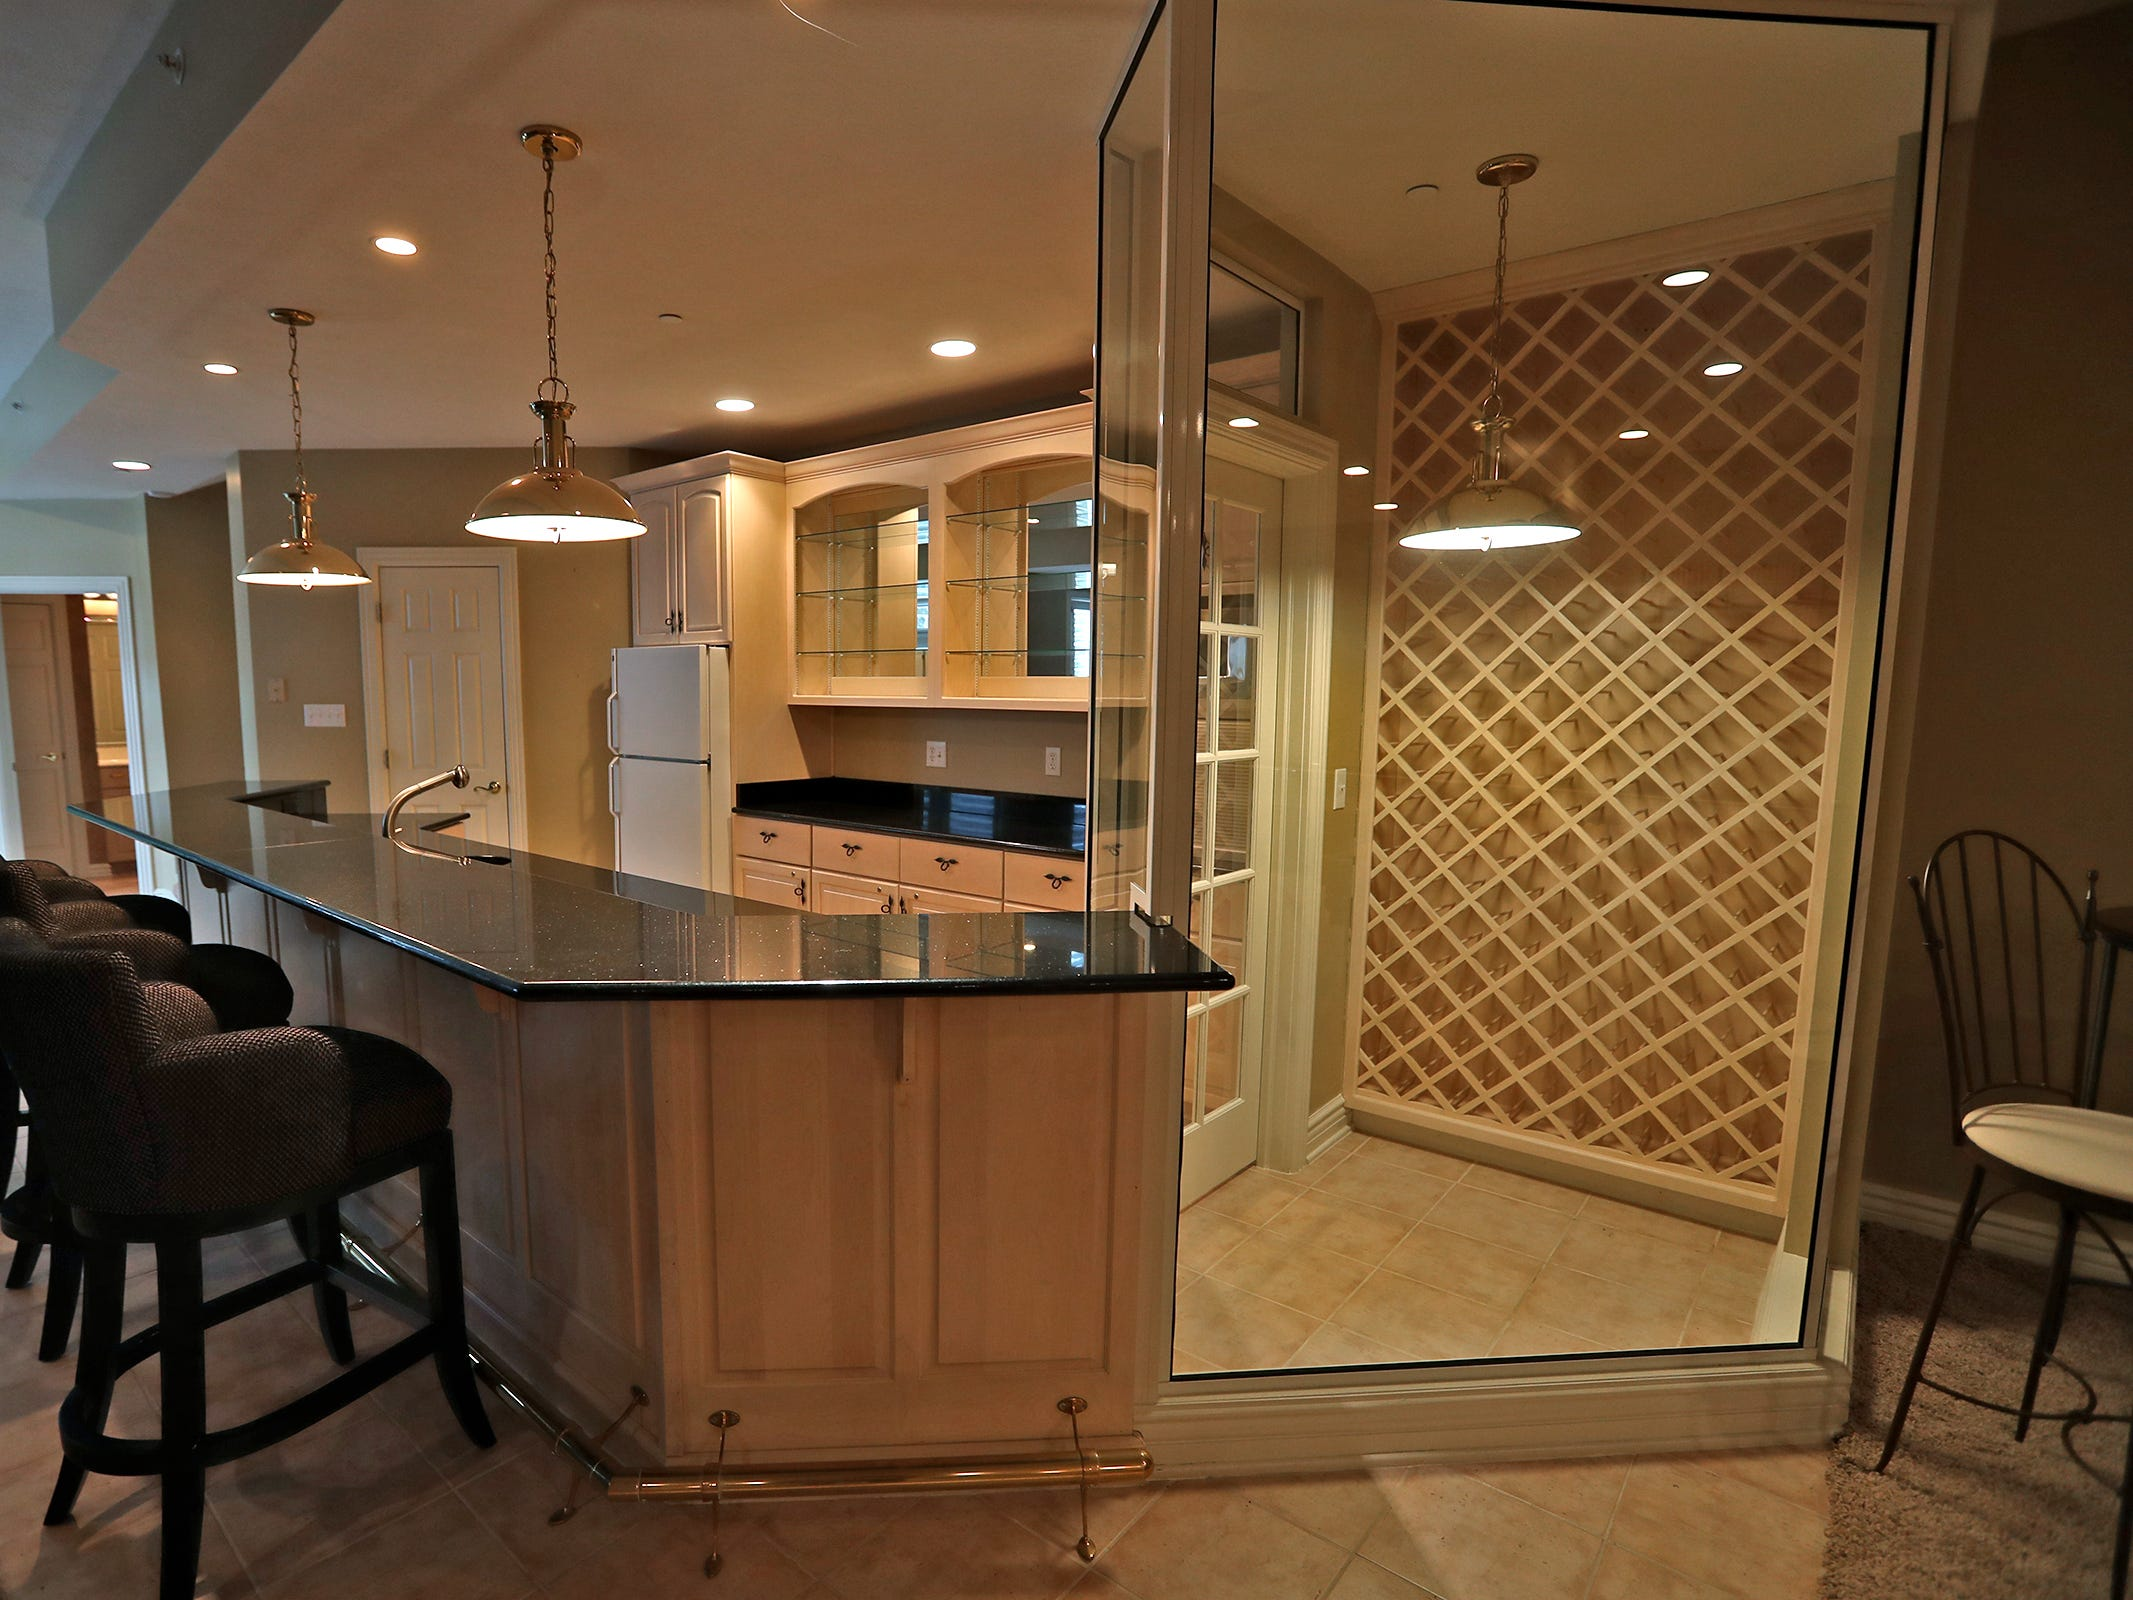 This is a kitchen and bar with a wine cabinet in the basement of the home at 1270 Laurelwood Ct. in Carmel, Friday, Dec. 28, 2018.